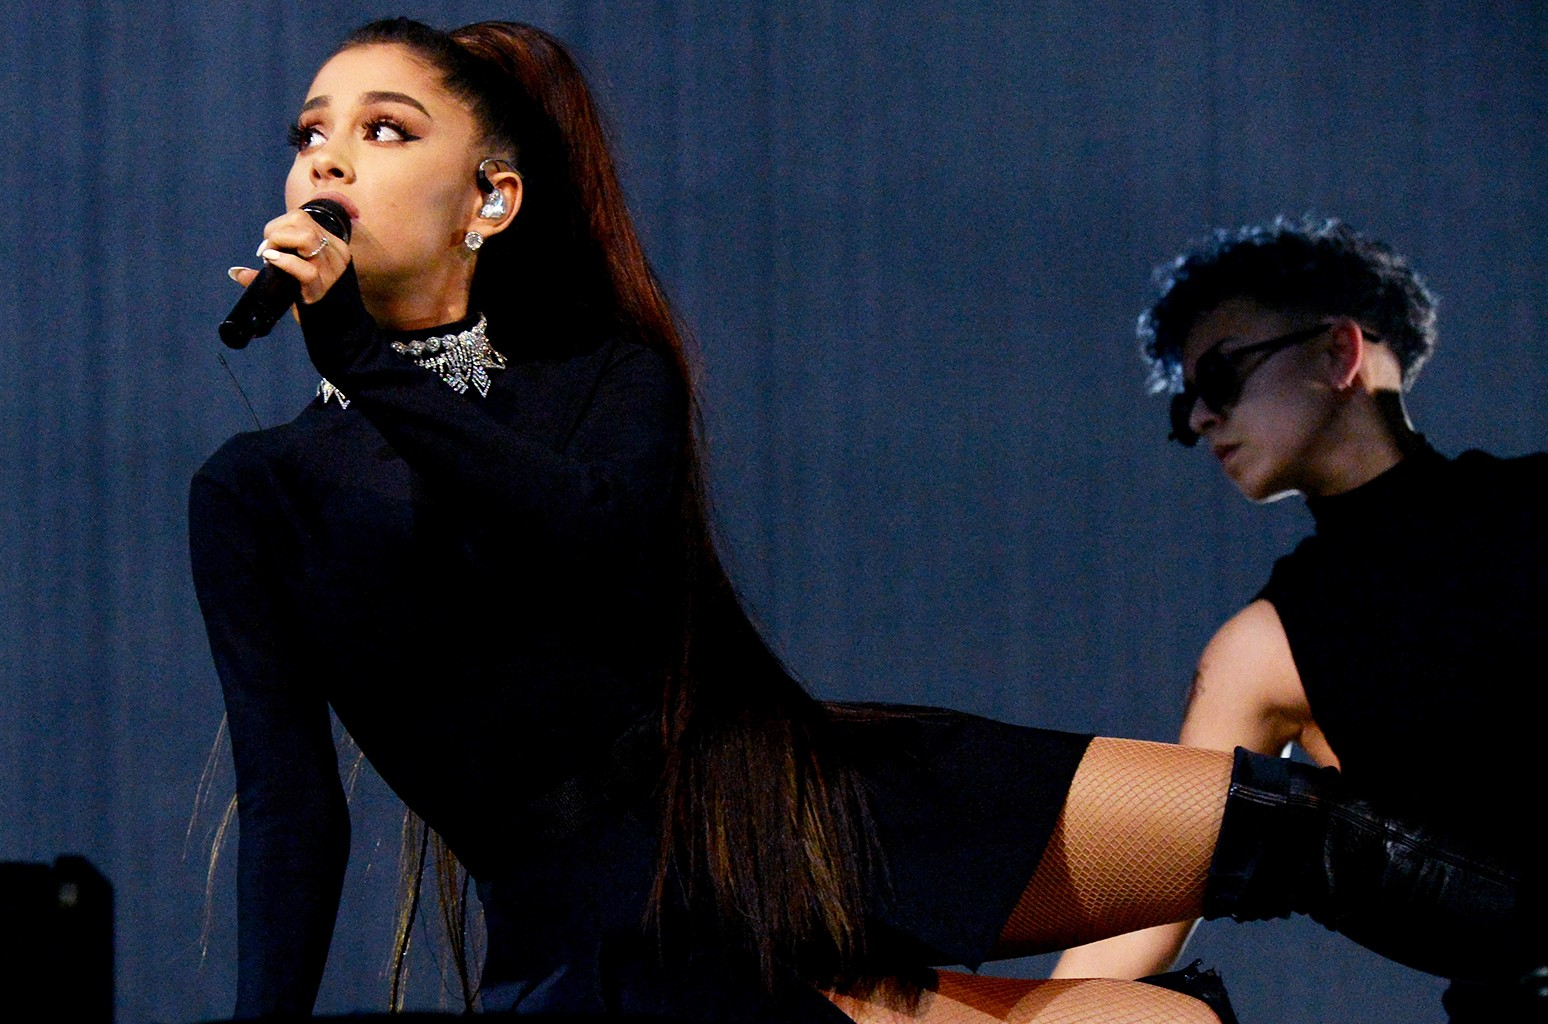 Ariana Grande performs during the Dangerous Woman Tour.